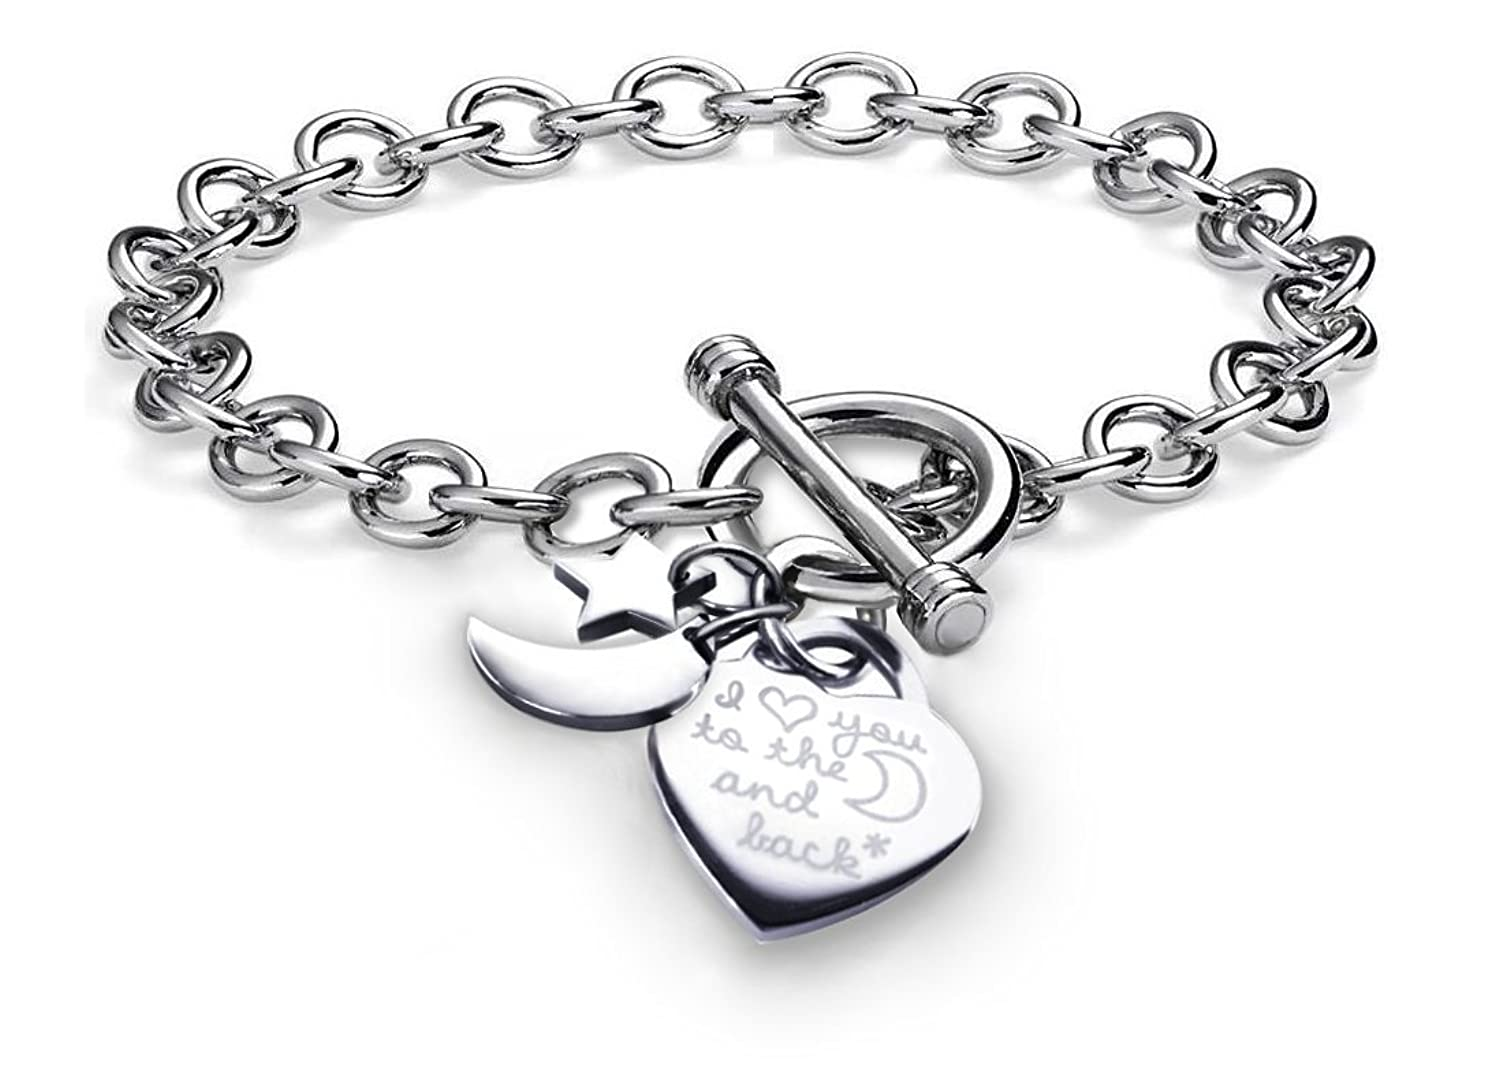 Amazon: Charms Bracelet Heart Toggle I Love You To The Moon And Back  Stainless Steel Chain 75